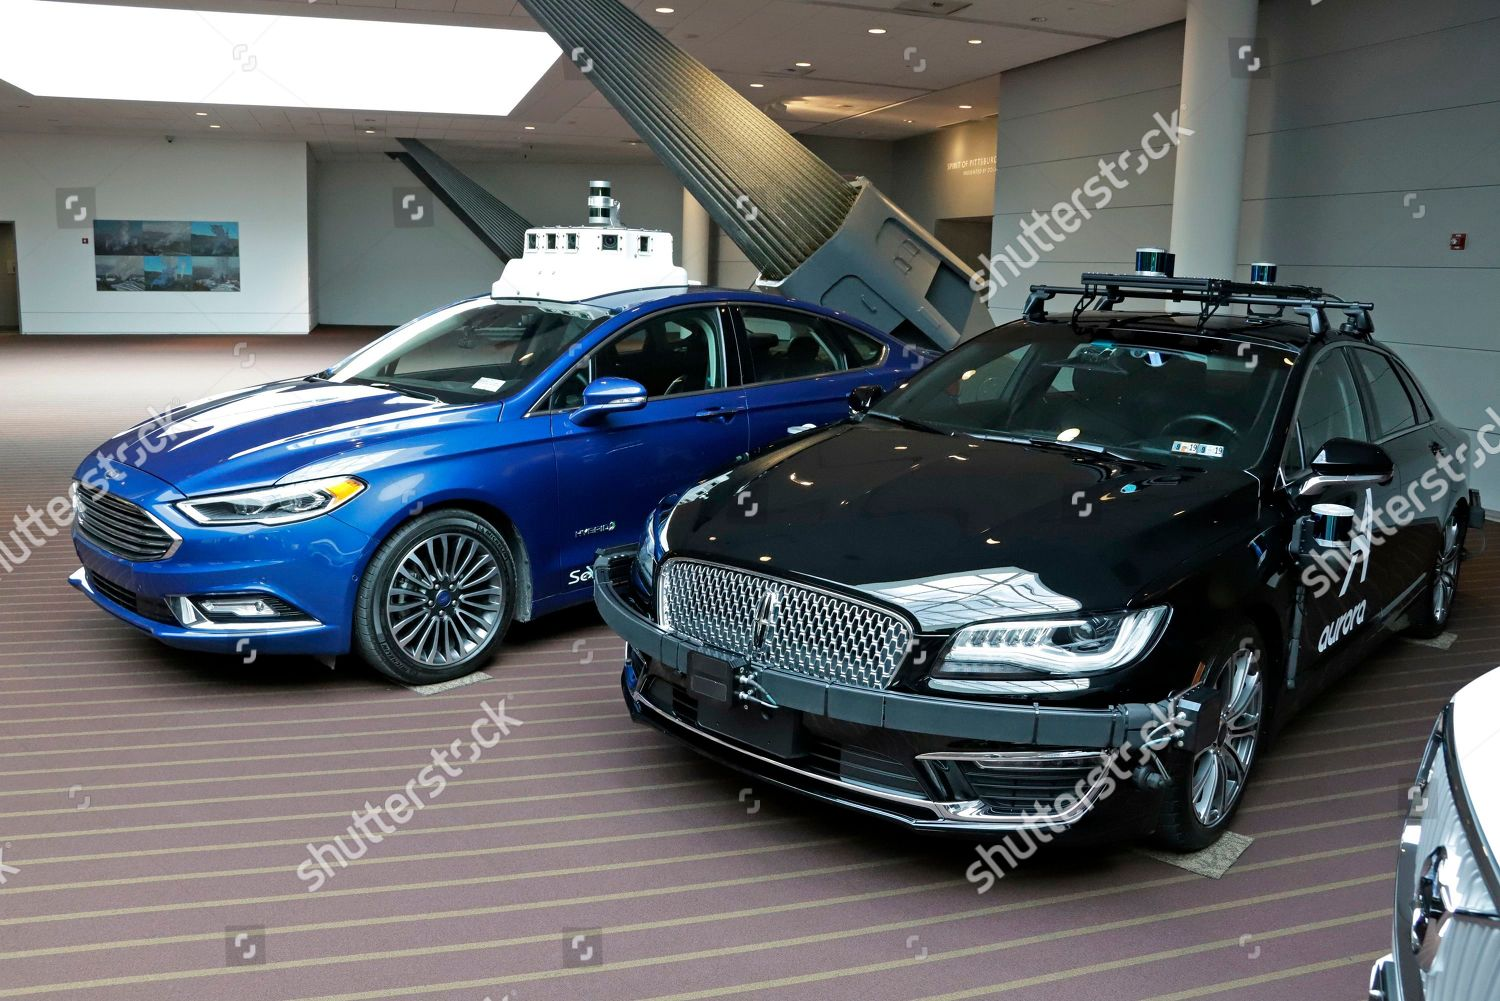 These autonomous vehicles Lincoln designed being tested Foto